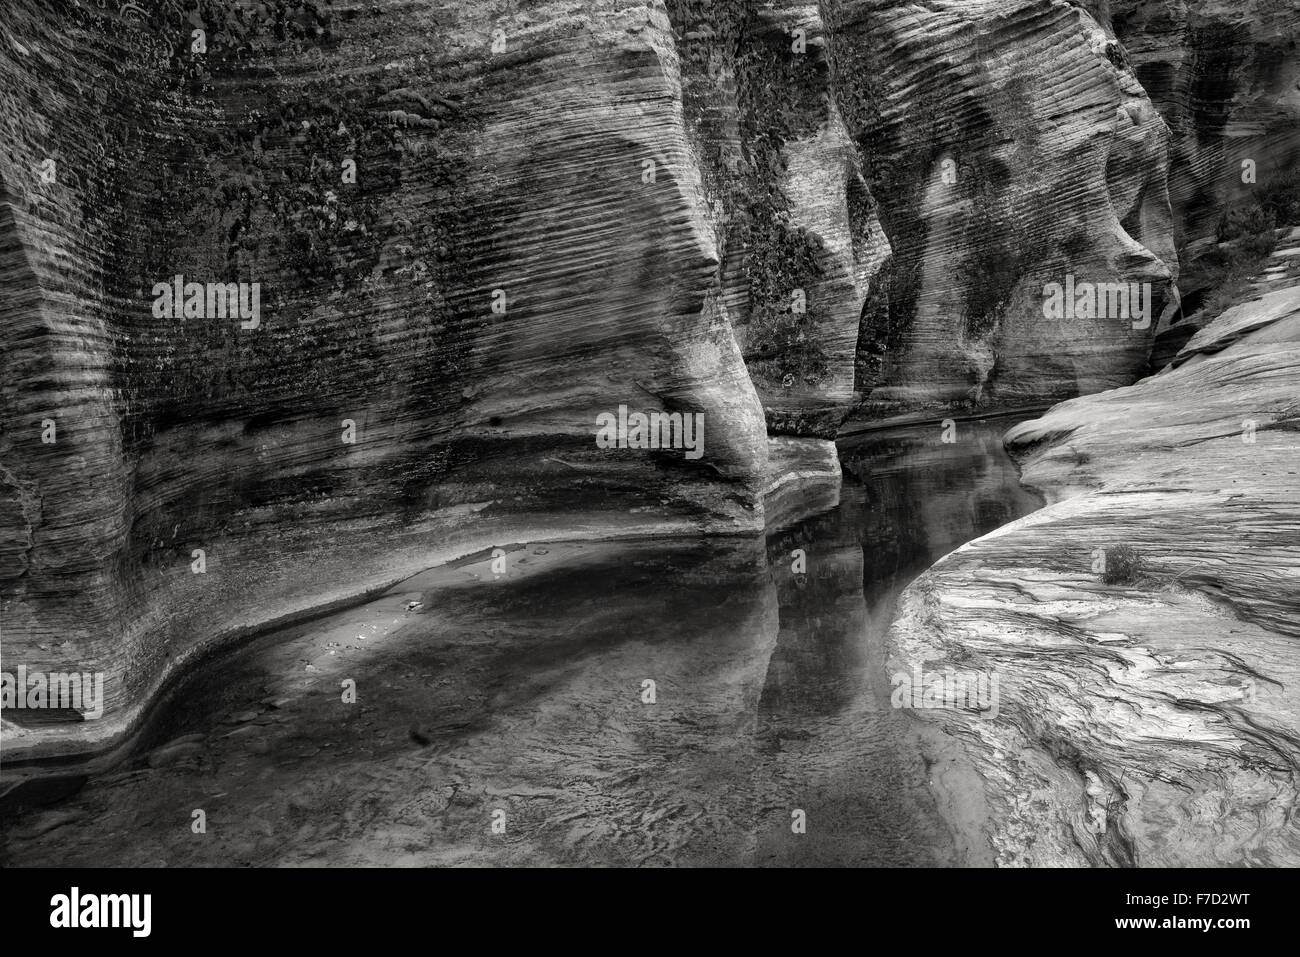 Seasonal Stream bed with water and reflection. Zion National Park, UT - Stock Image